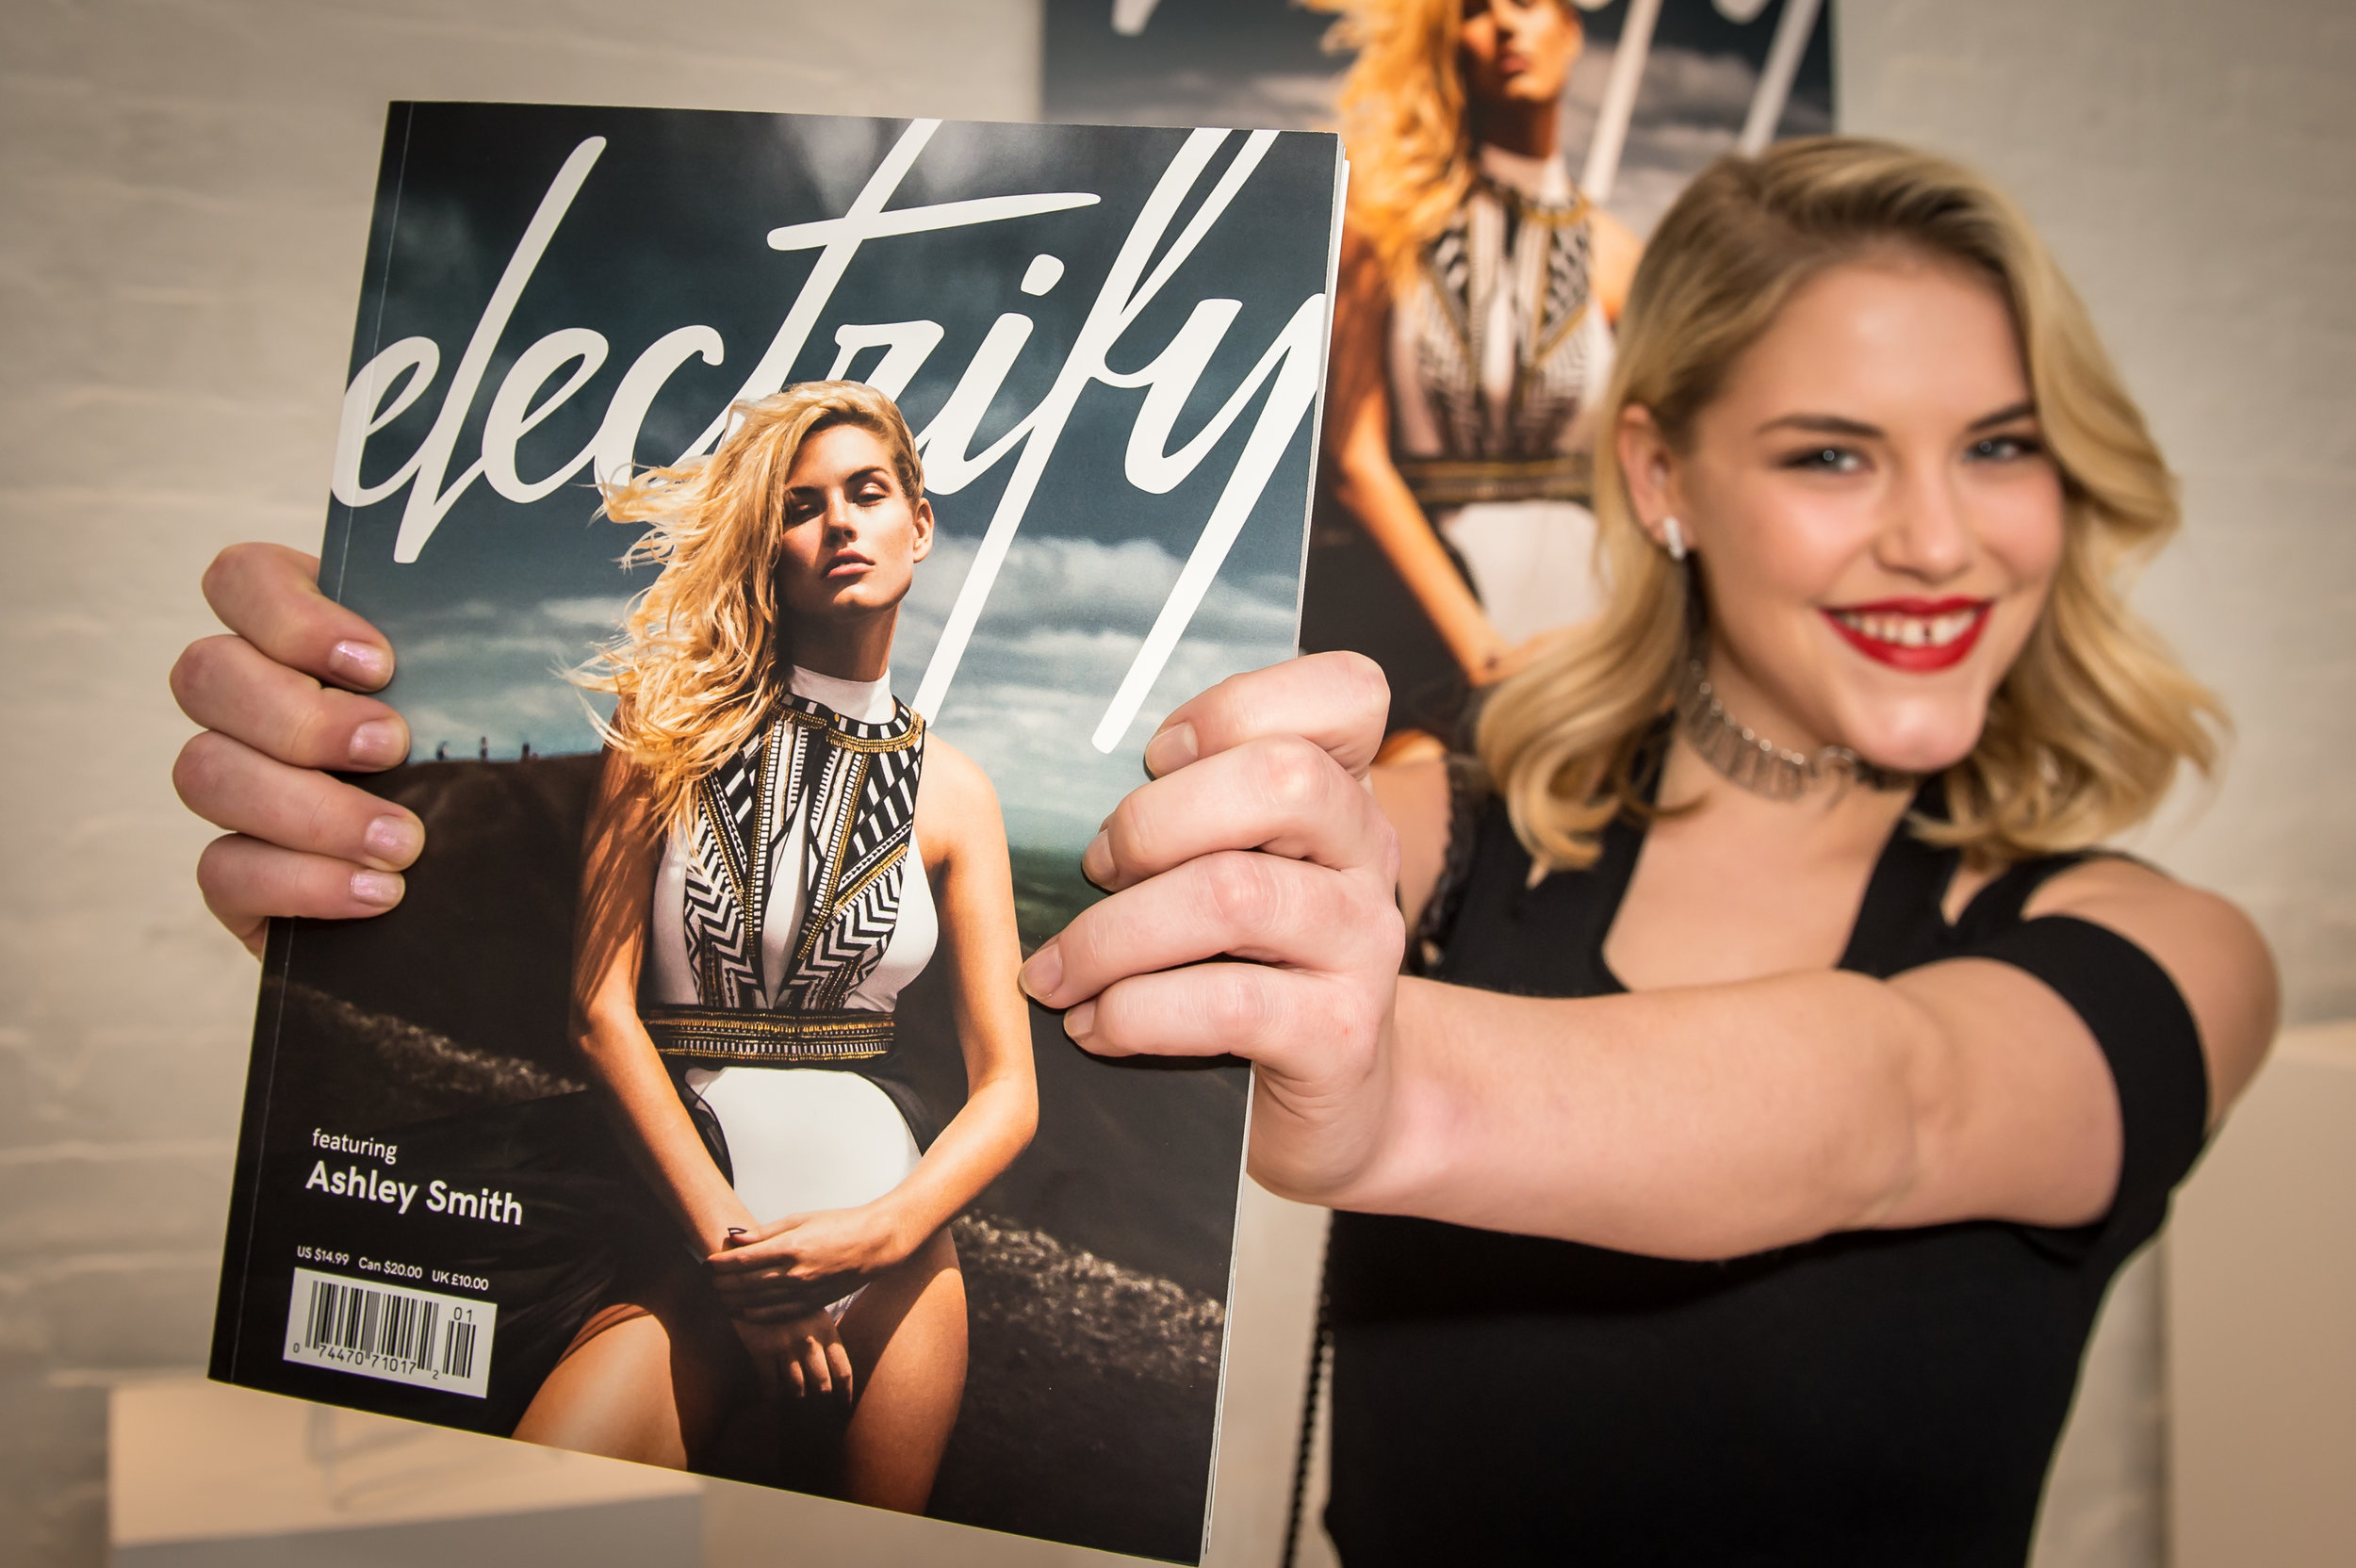 Curiosity Thrives with Ashley Smith - Published in Electrify Magazine VOL 1